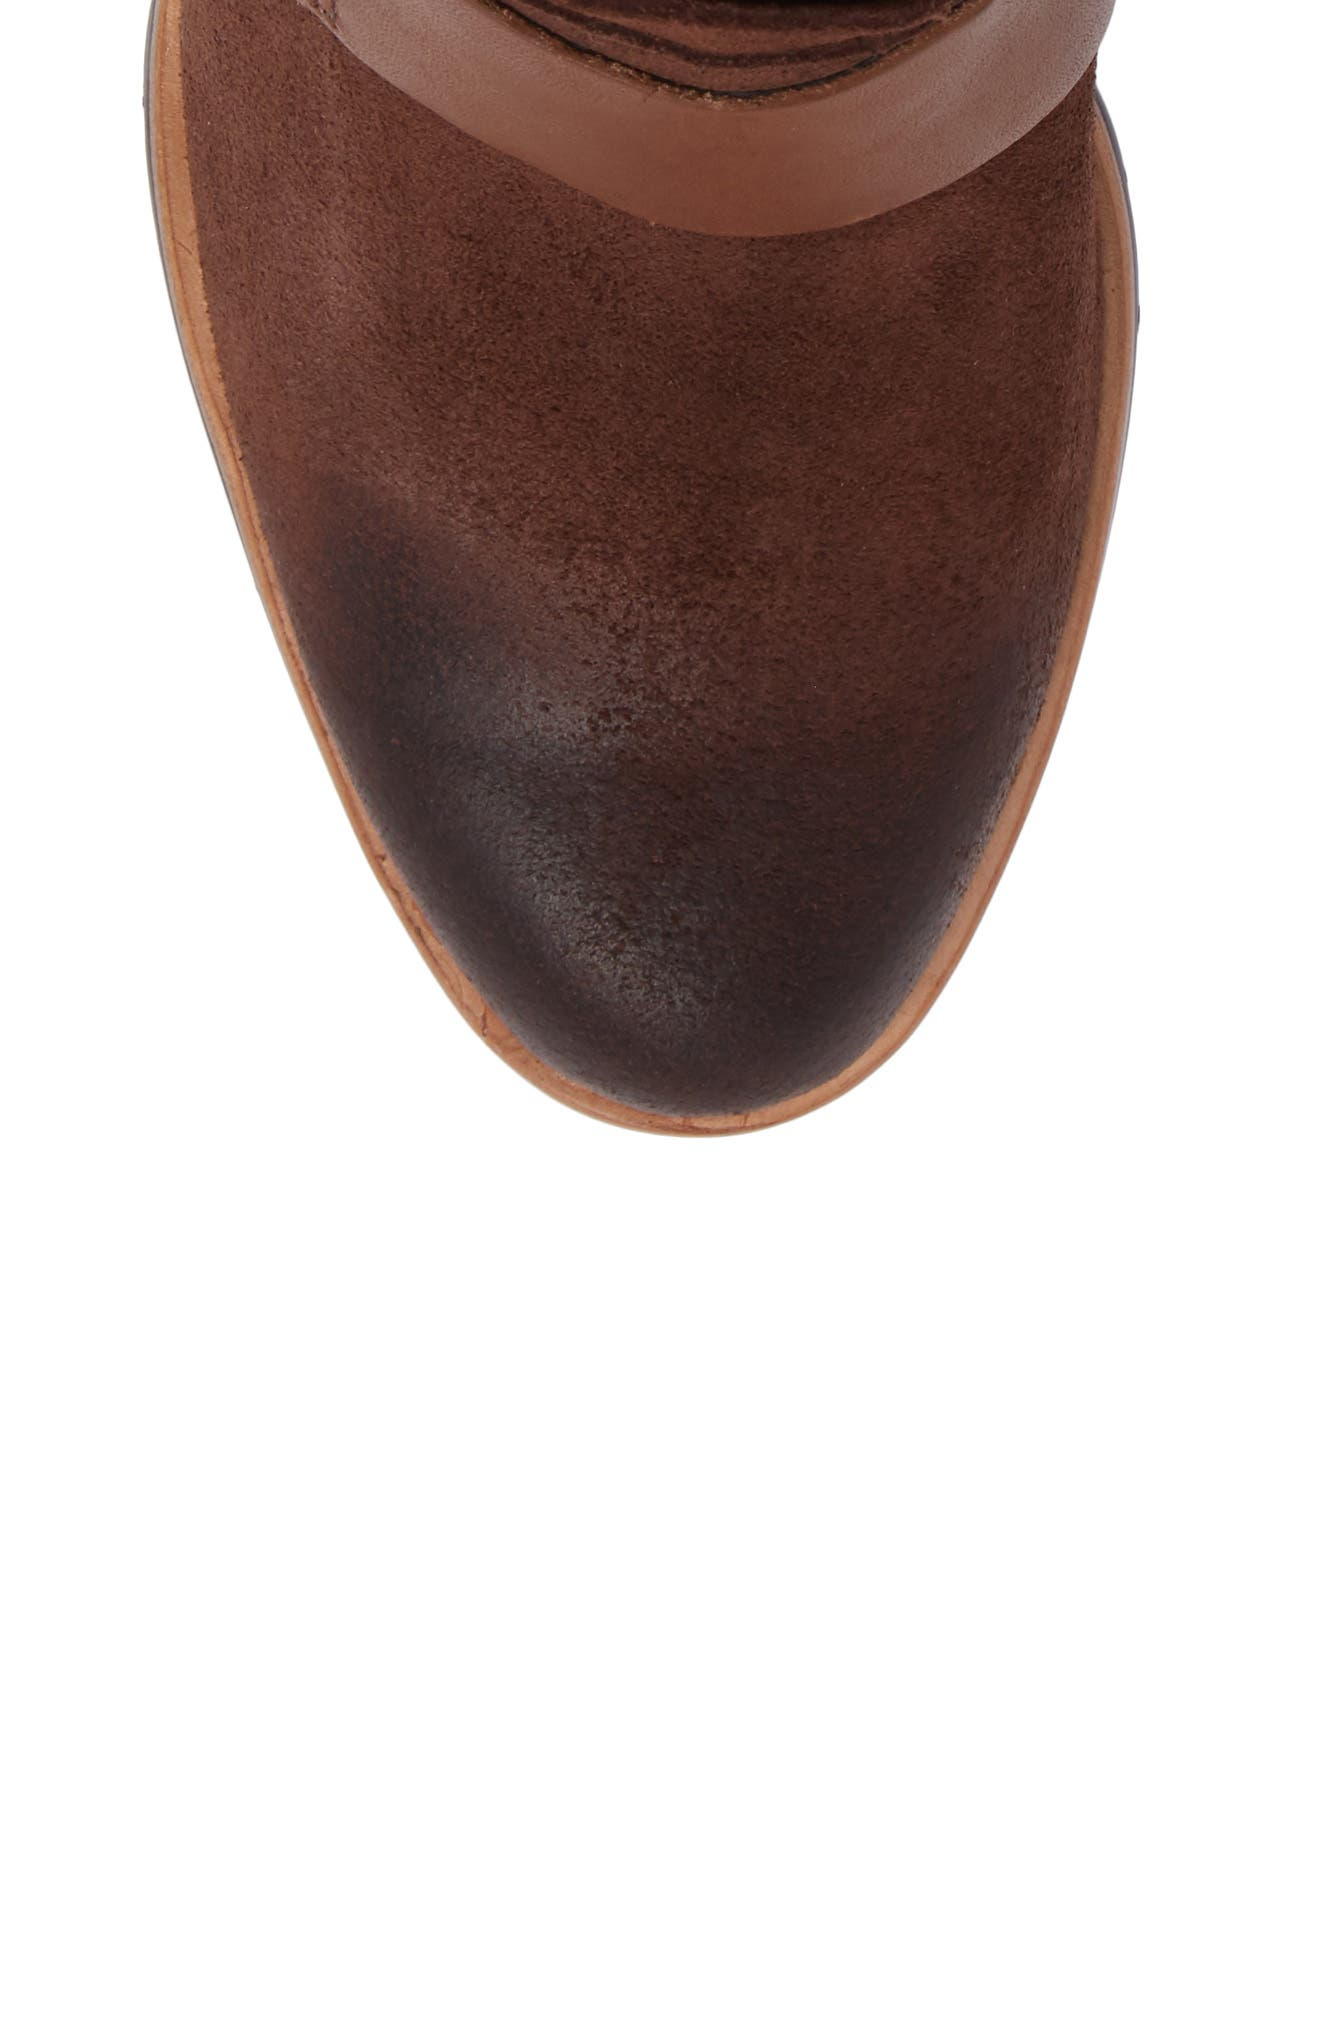 After Hours Waterproof Bootie,                             Alternate thumbnail 5, color,                             Tobacco